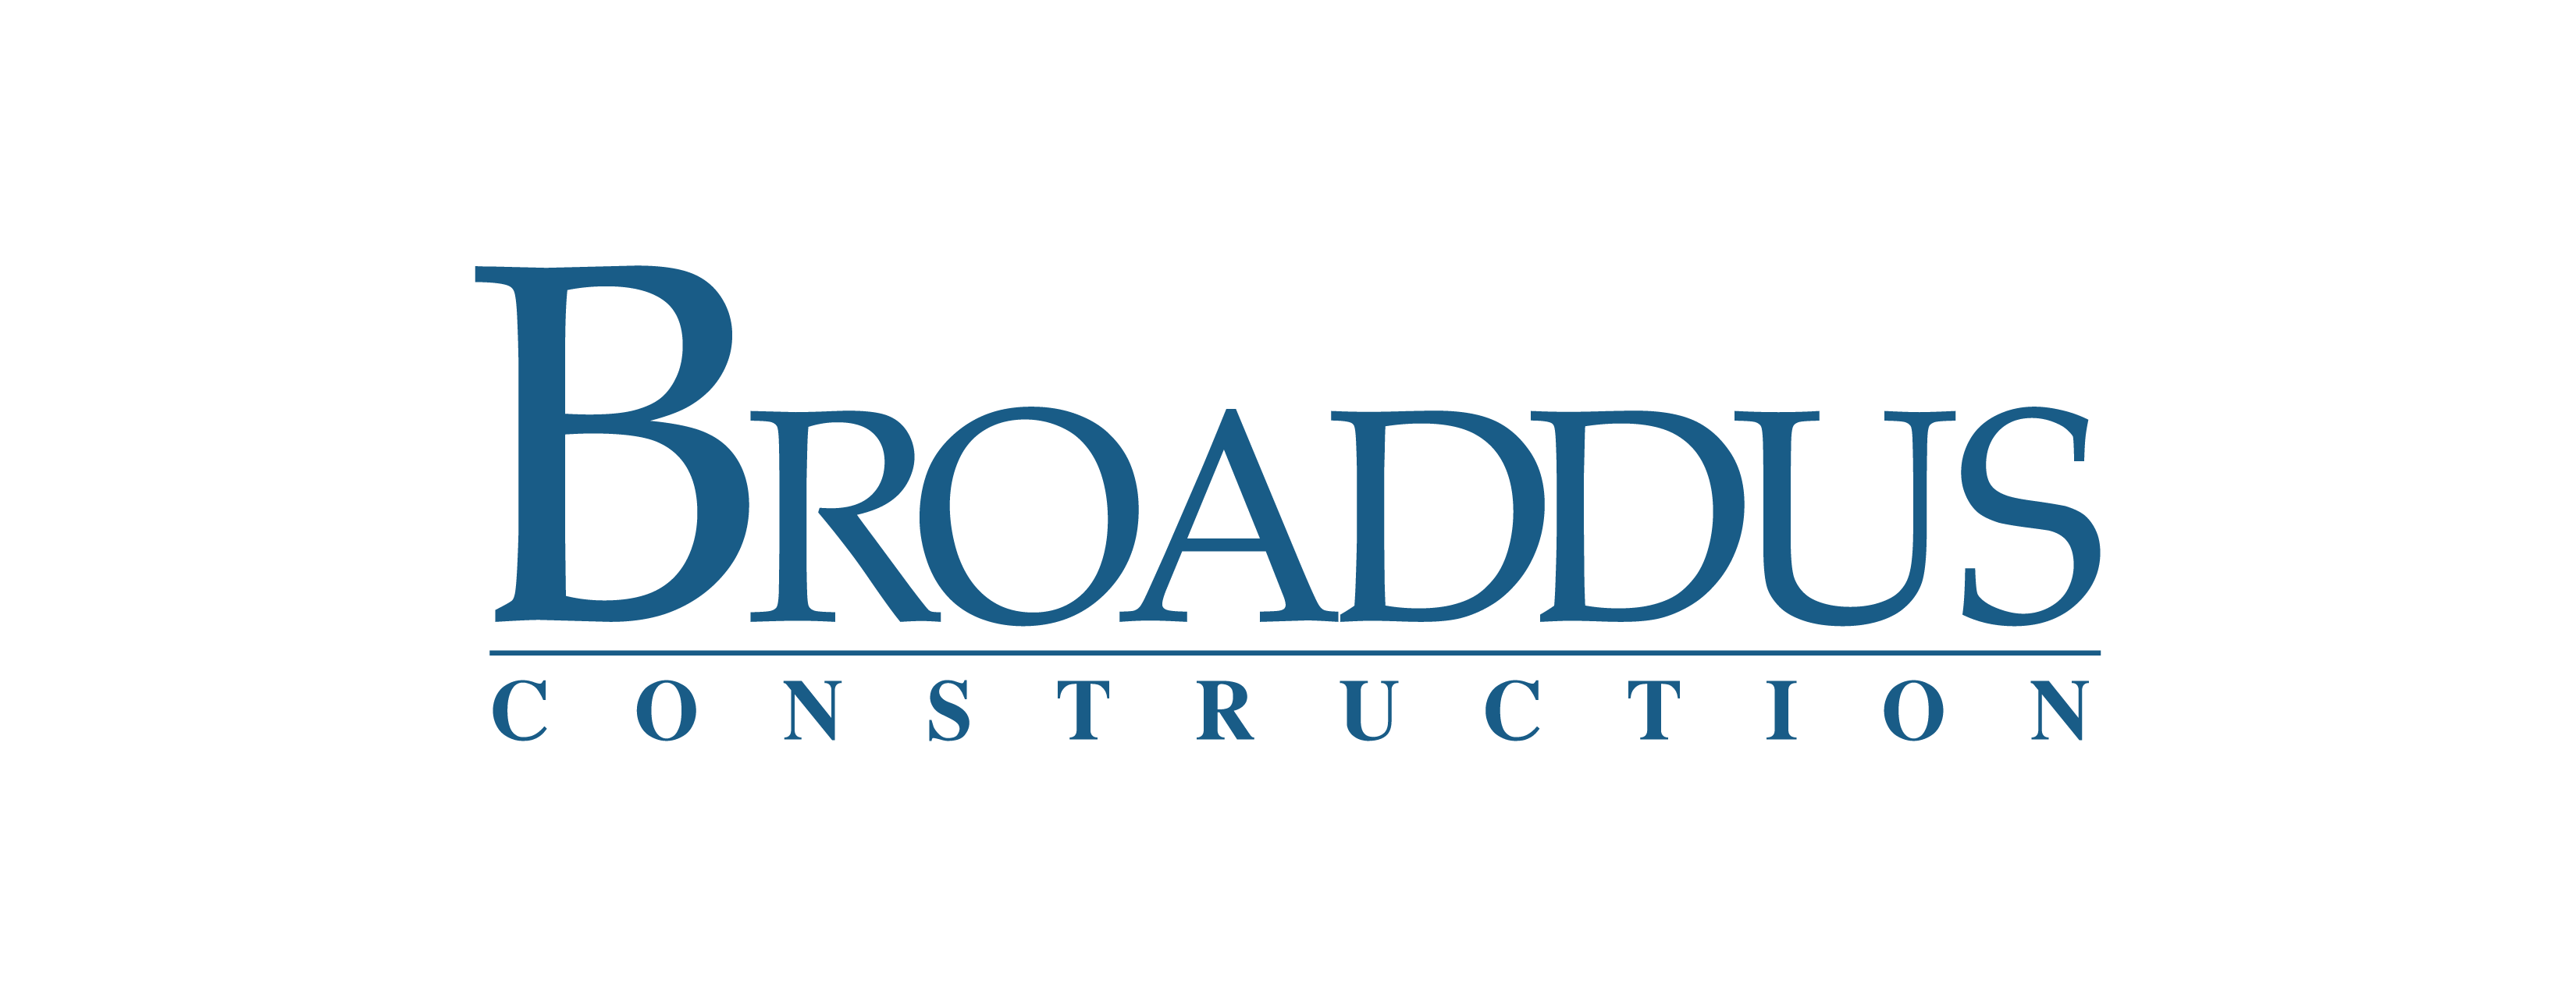 Broaddus Construction + All rights reserved + terms of use